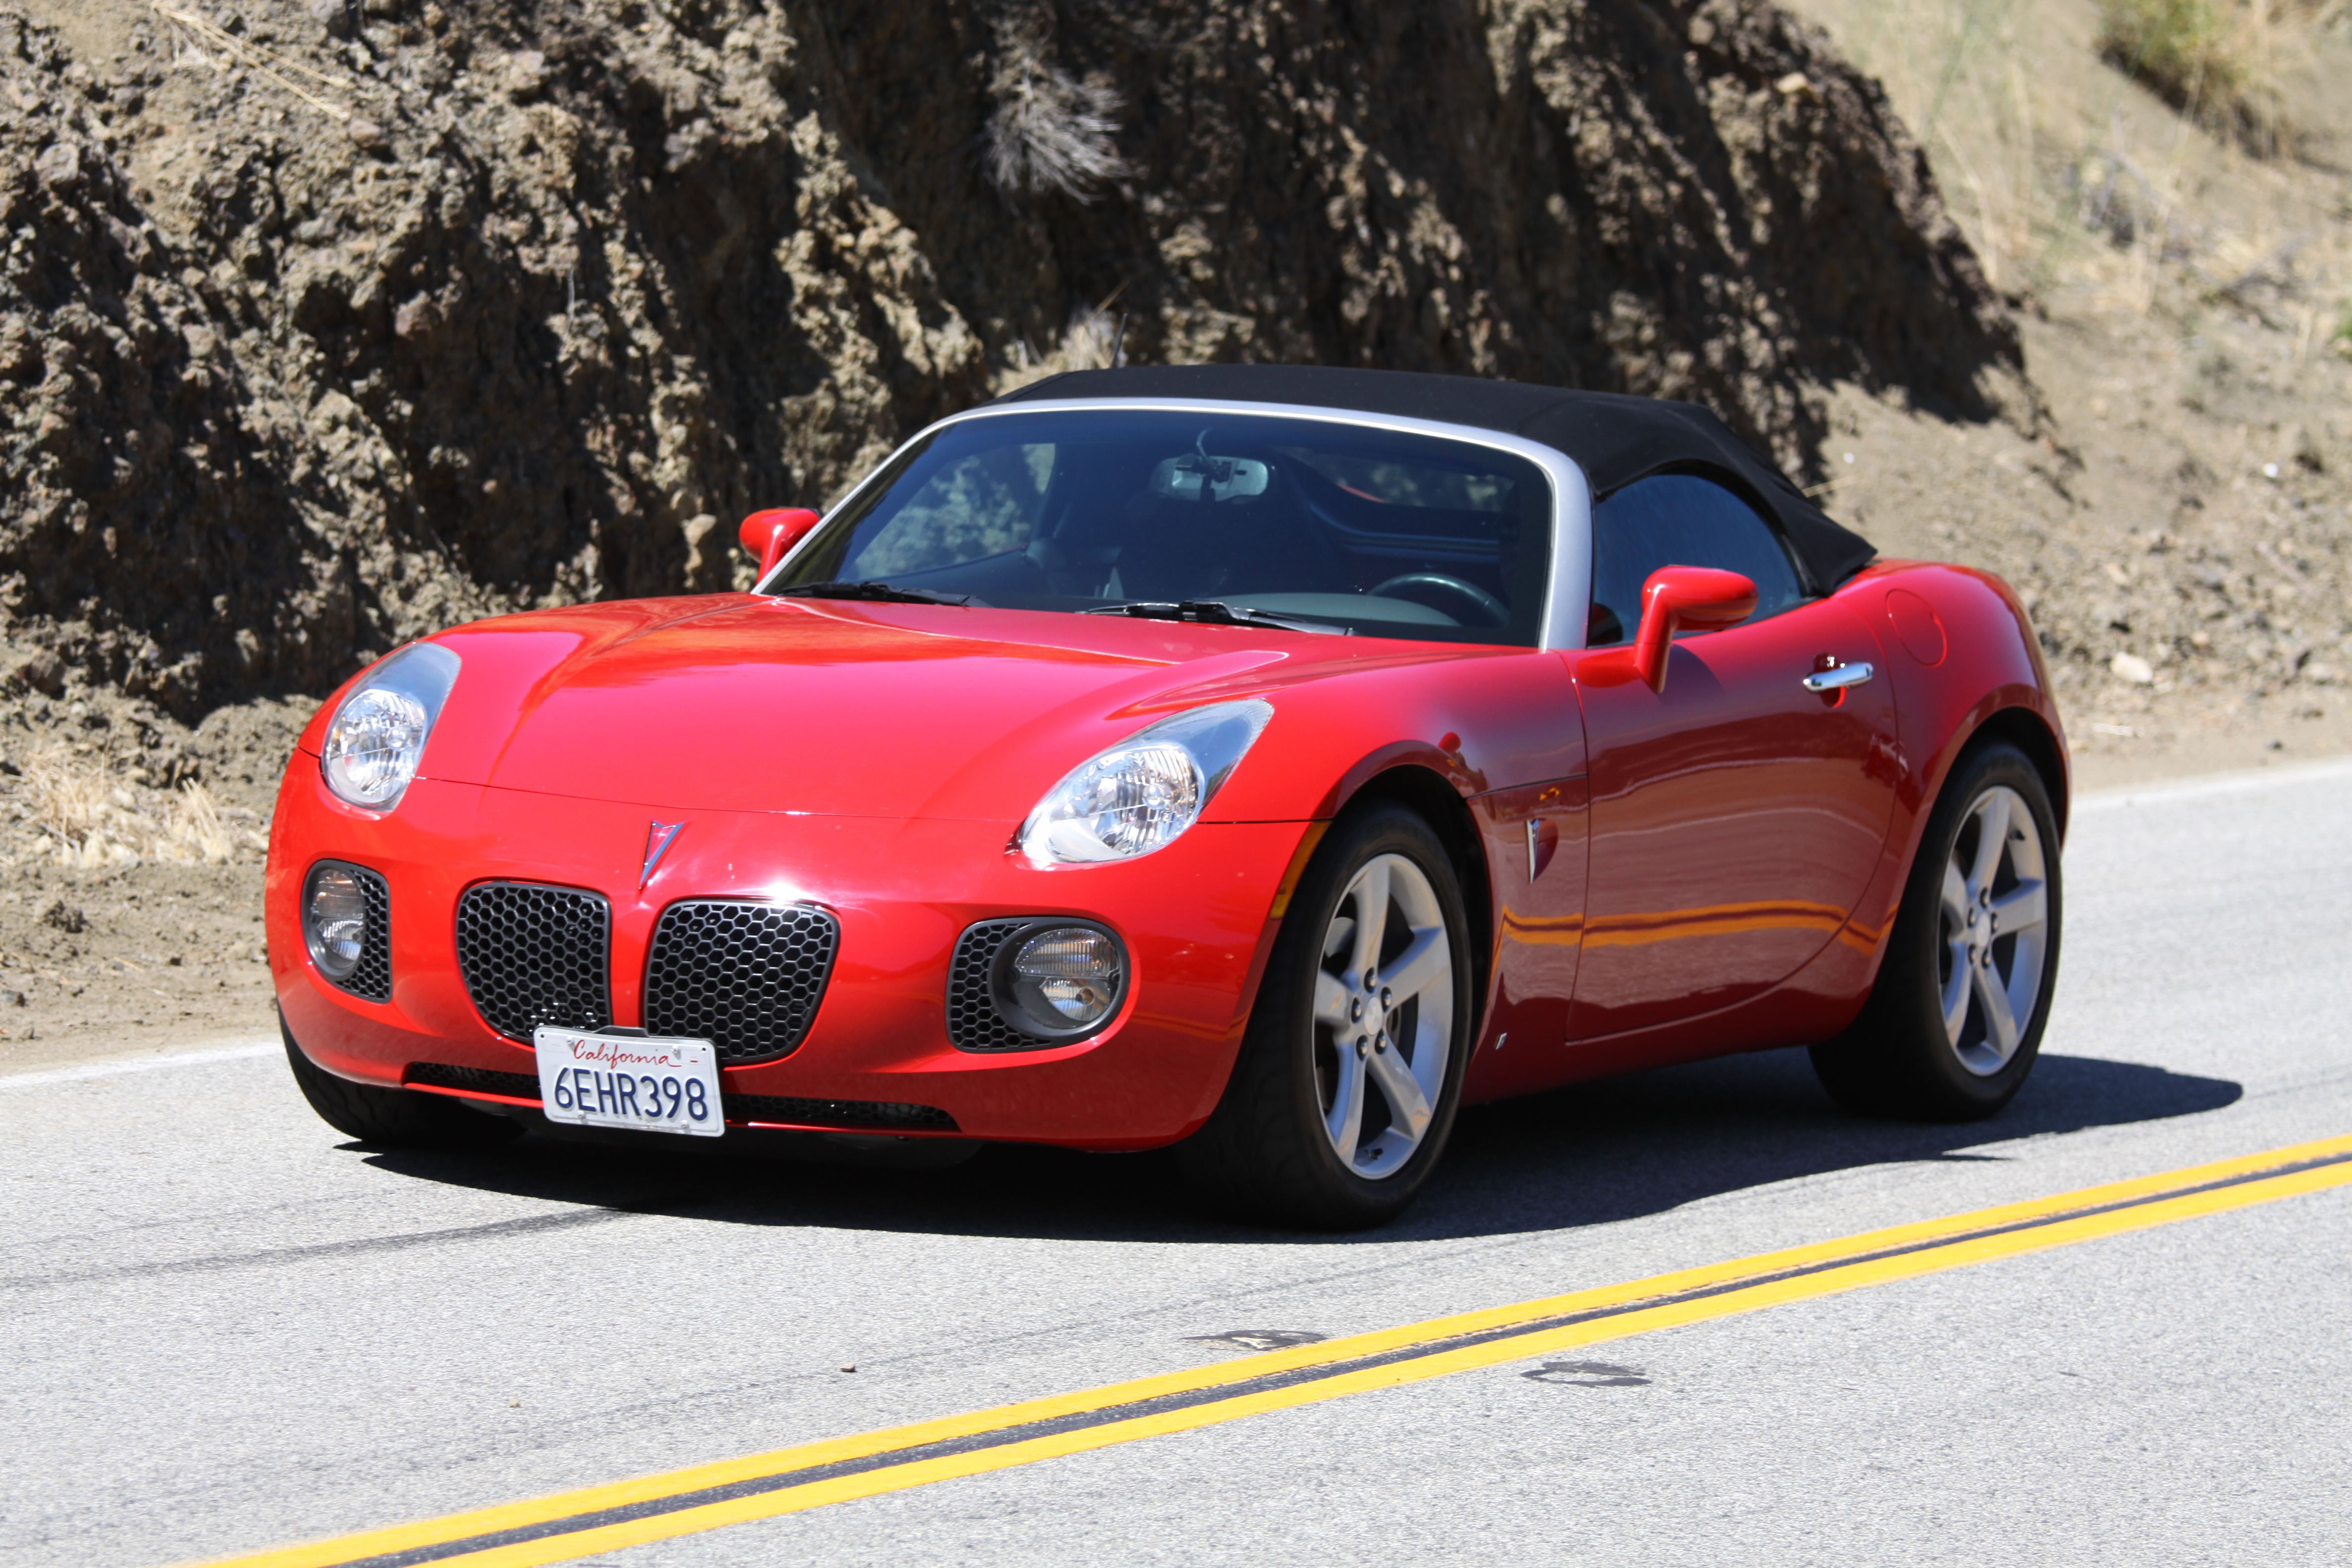 Pontiac Solstice Roadster | Flickr - Photo Sharing!